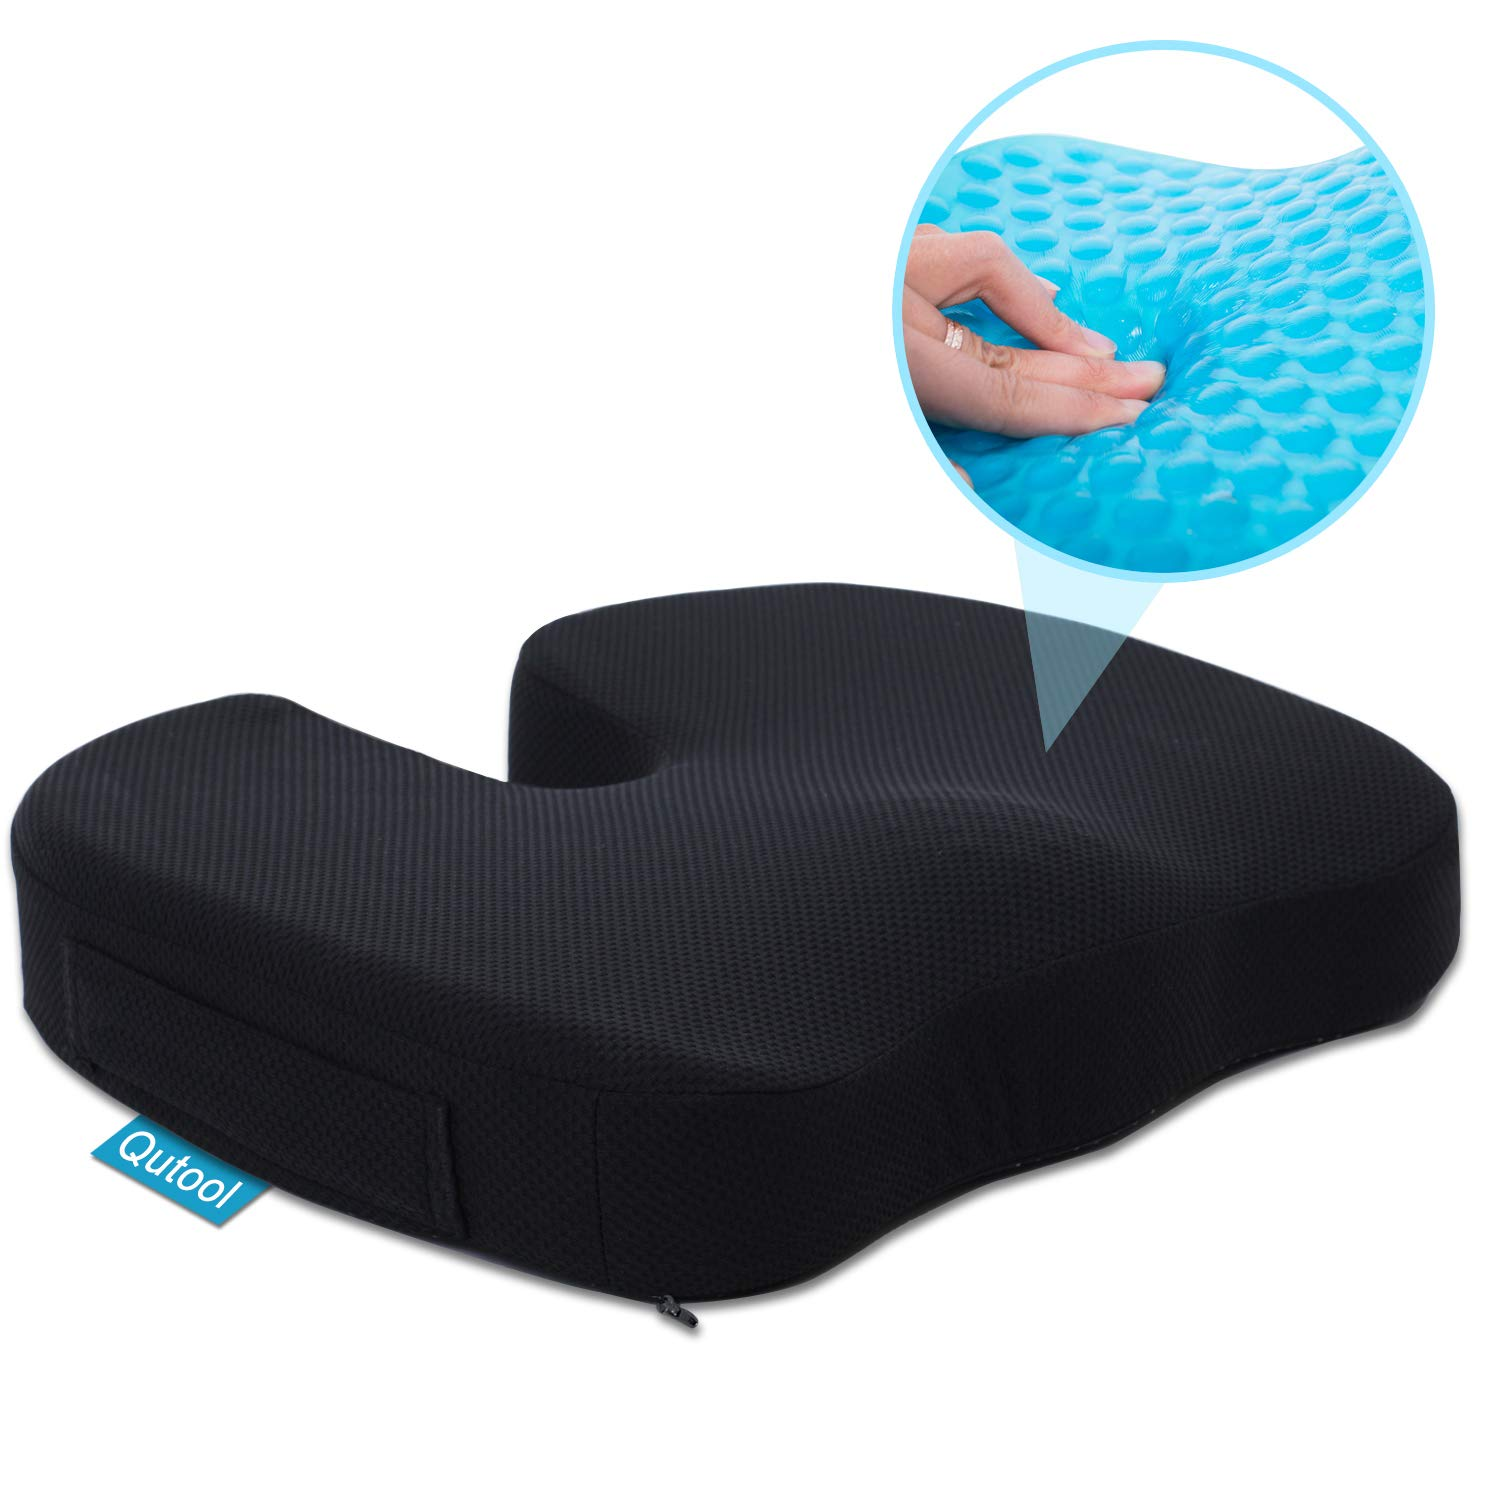 Gel Seat Cushion for Office Chair Car Wheelchair Orthopedic Memory Foam Support Pillow for Sciatica, Tailbone, Lower Back Pain Relief - Washable & Breathable Cover - Non-Slip Bottom